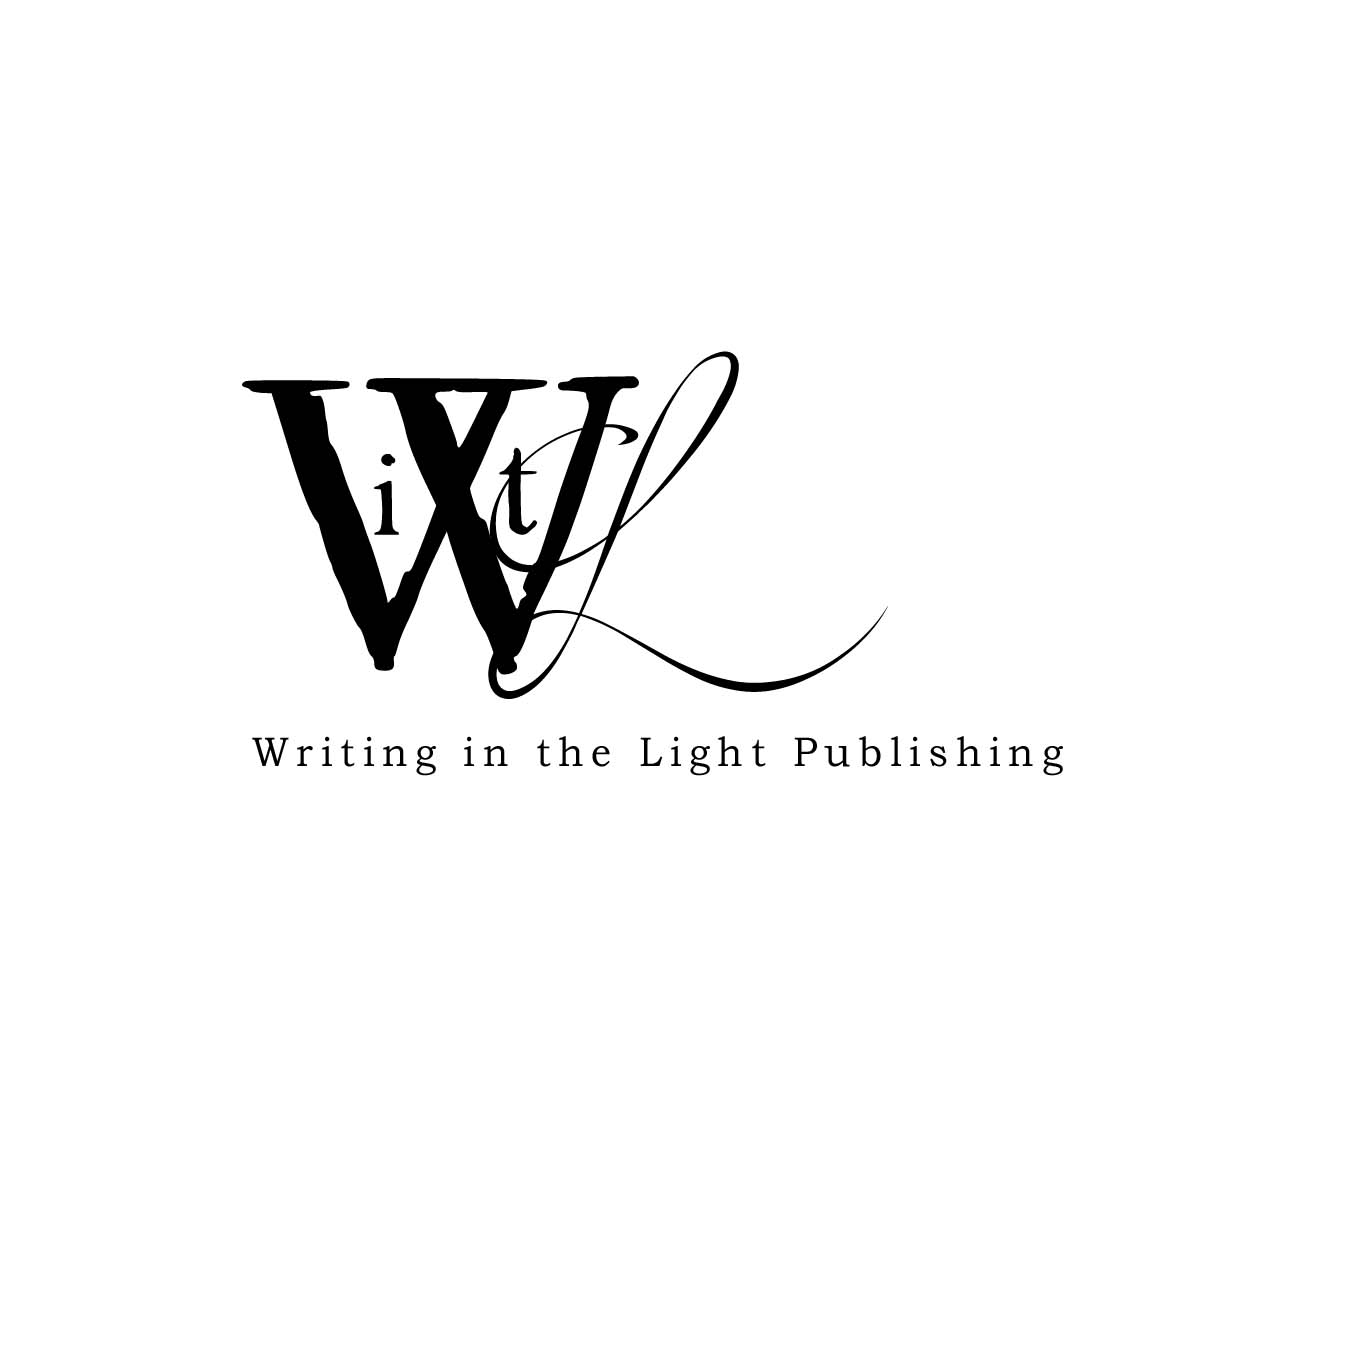 Writing in the Light